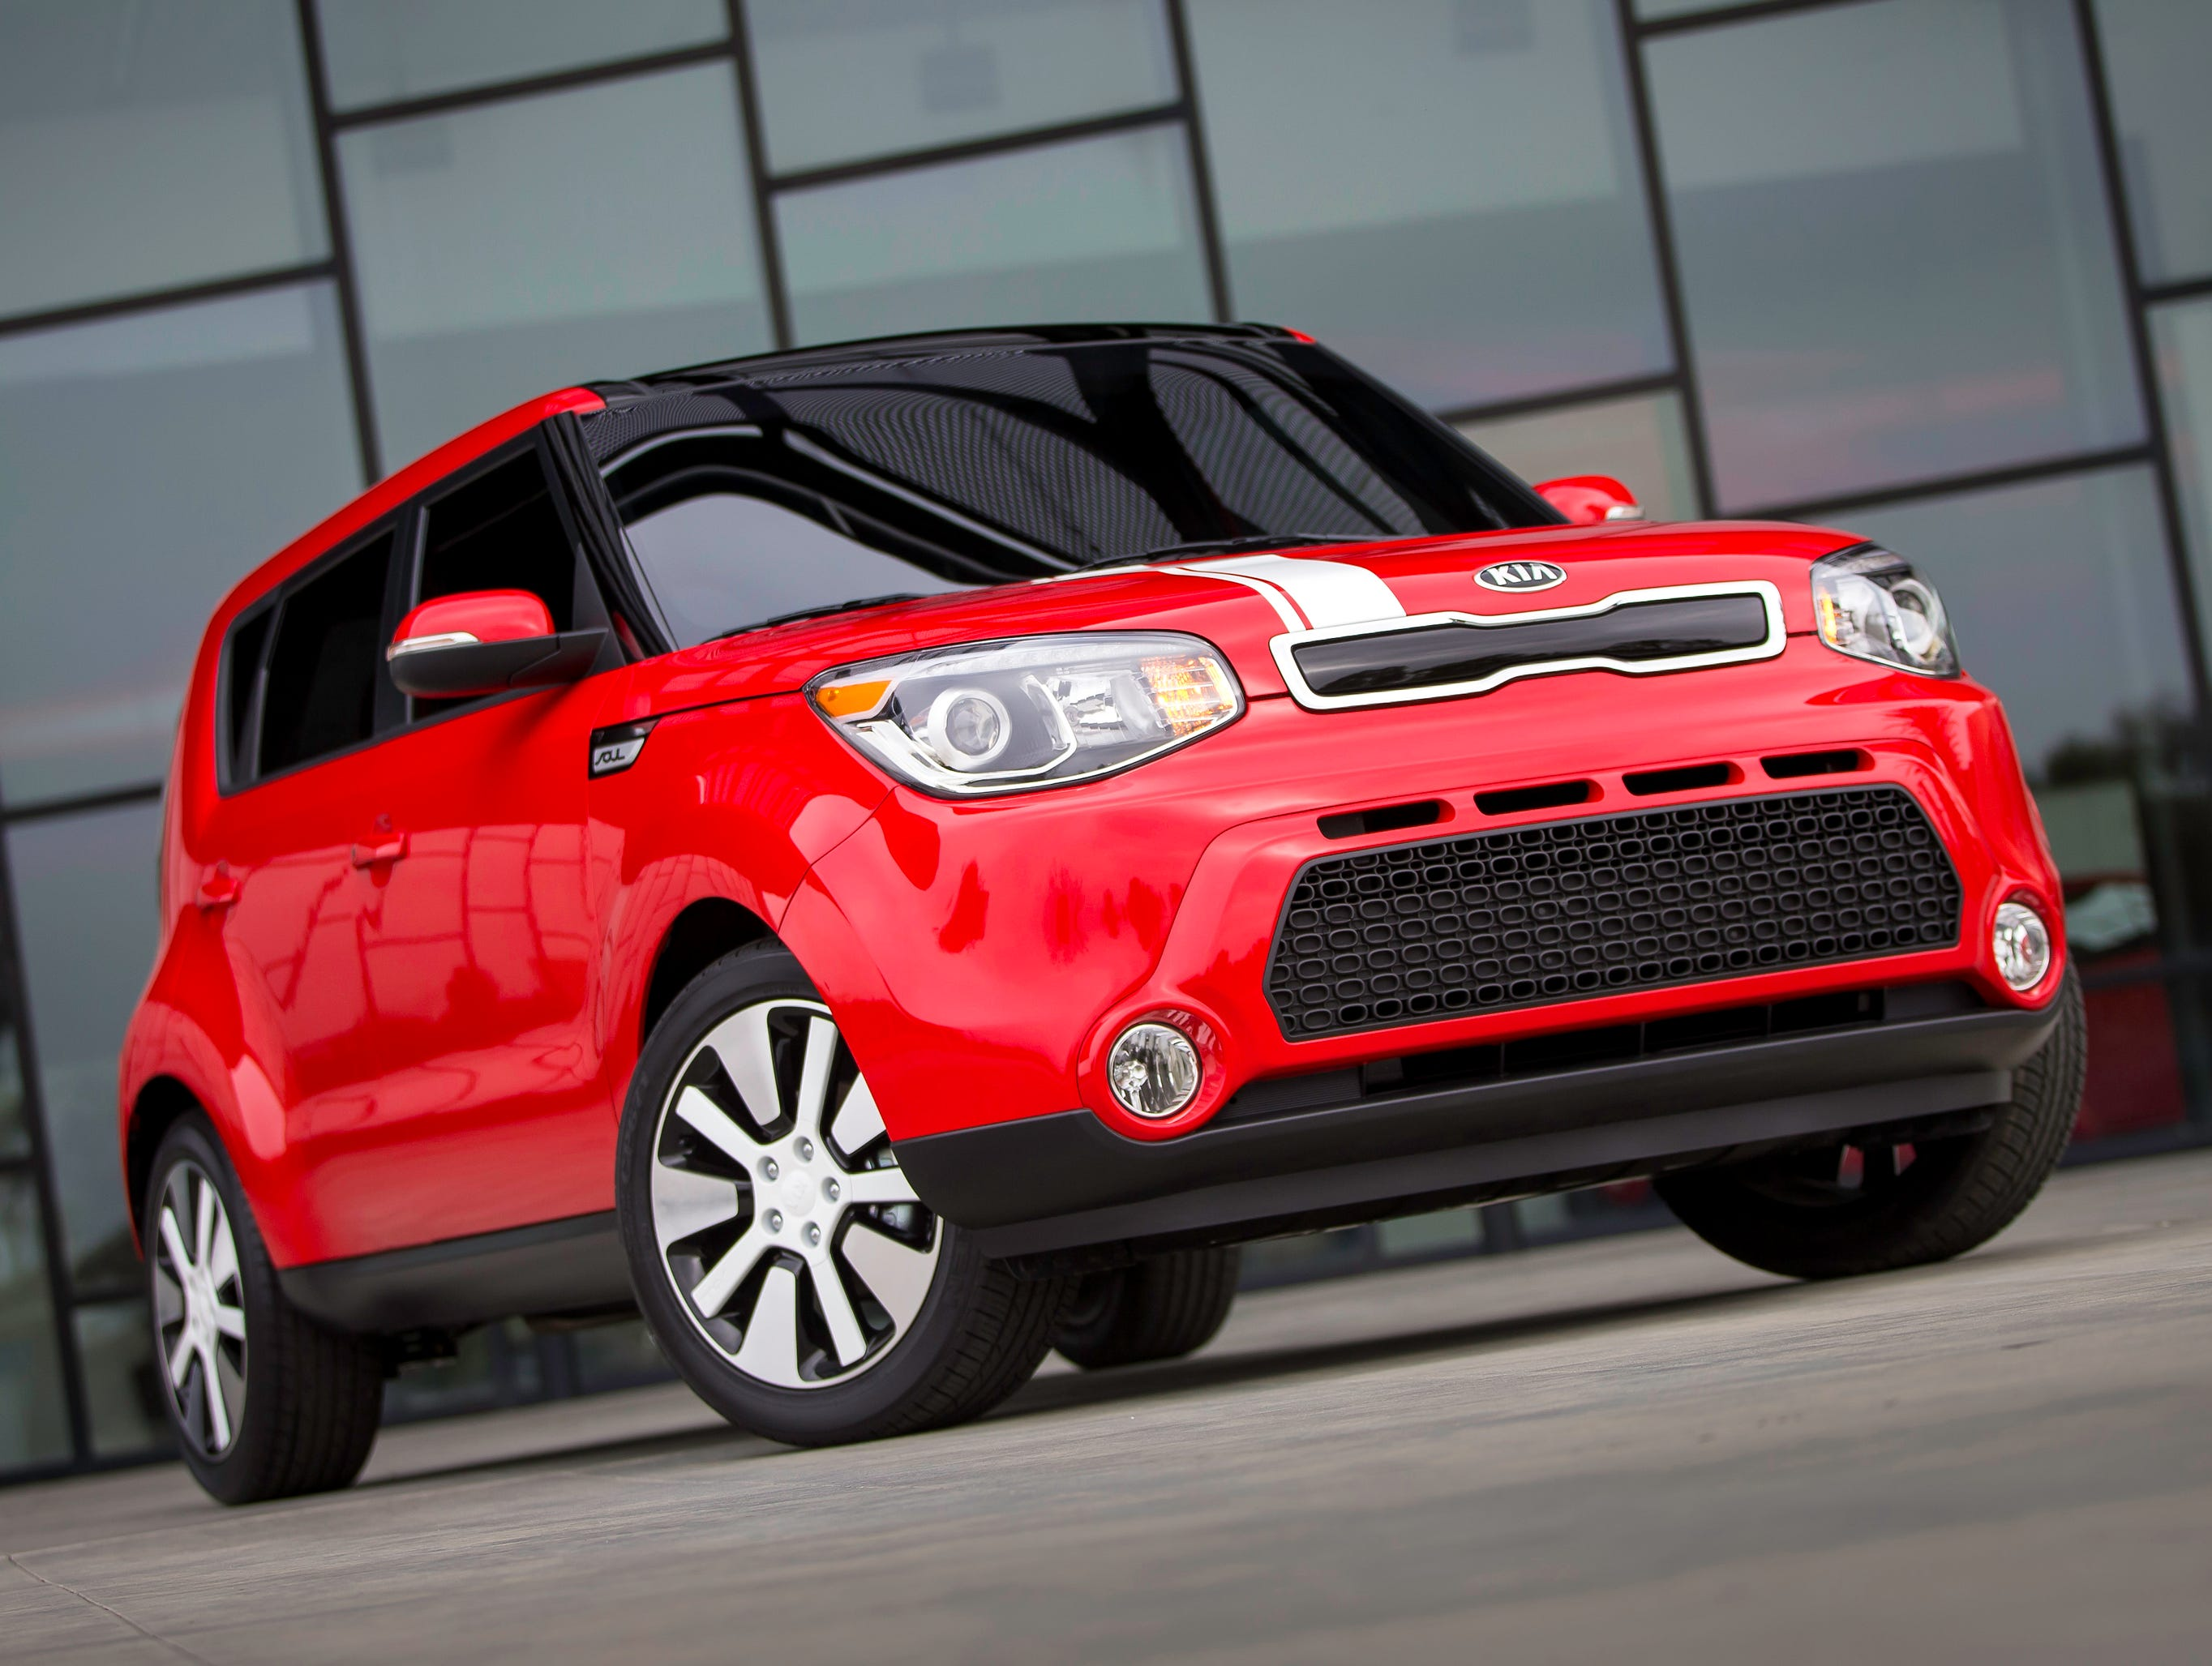 This year's Edmunds.com Top 10 Best Cars for Short Drivers includes the boxy Kia Soul starting at $15,200 (updated 2014 model shown here).